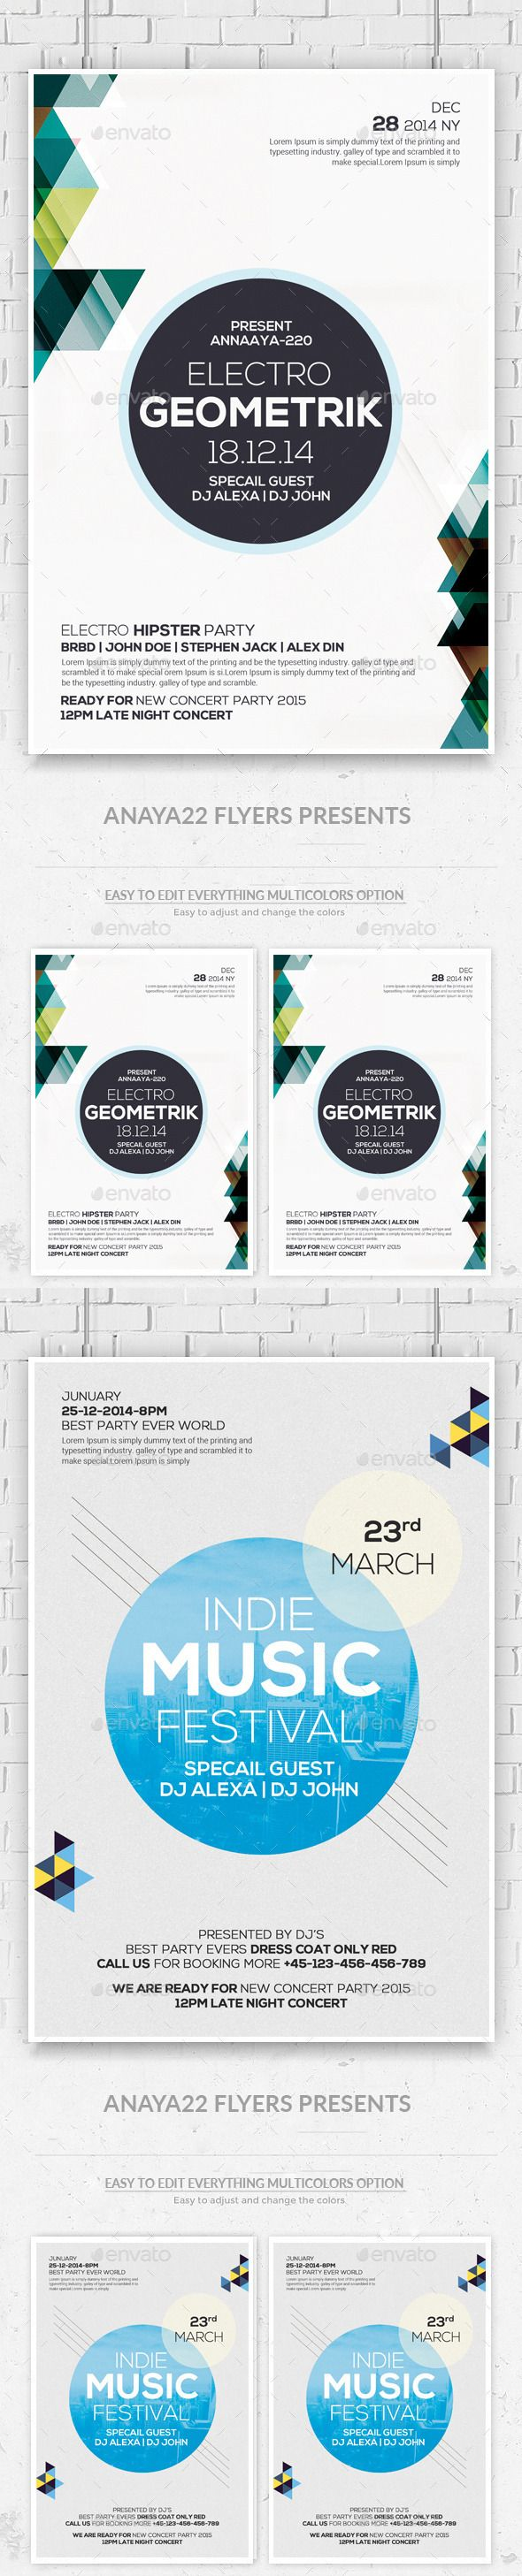 Geometric Flyers Bundle  Font Logo Flyer Template And Fonts